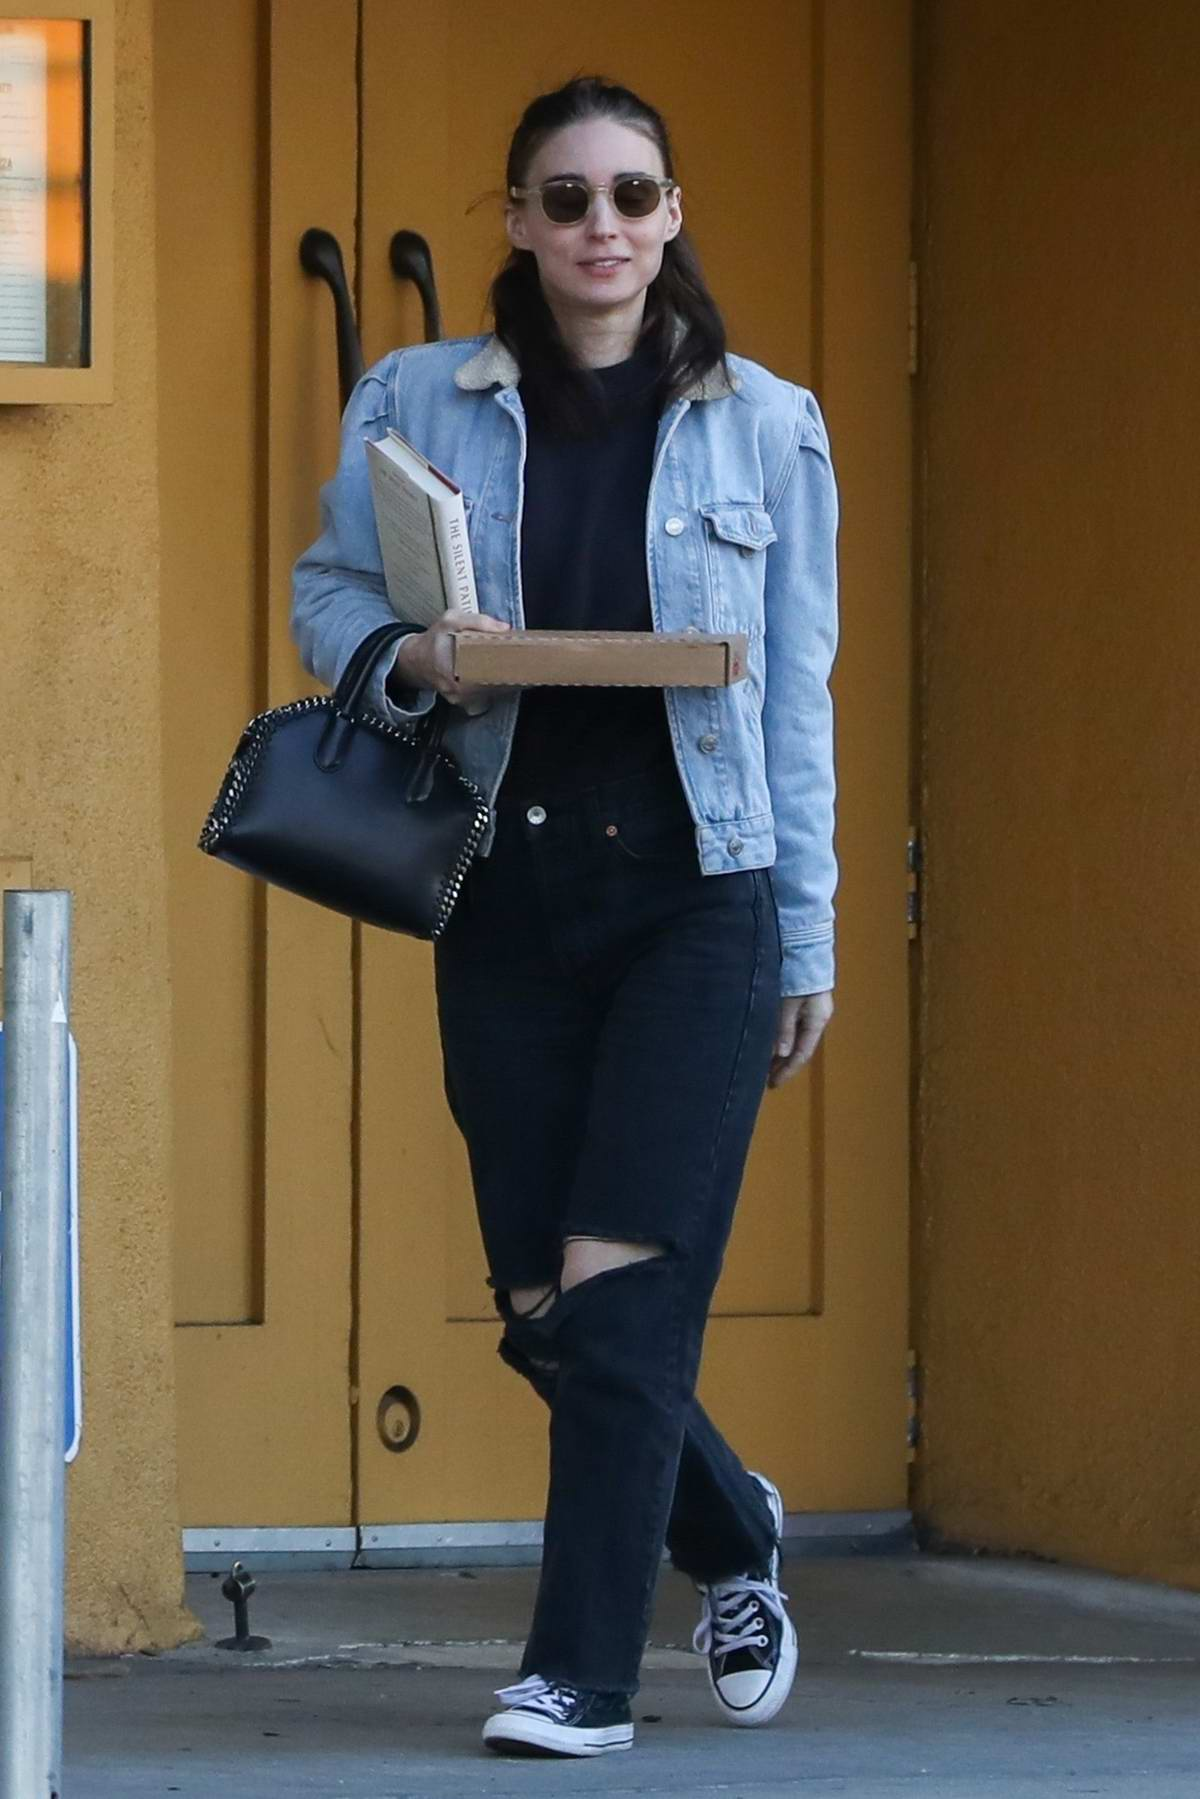 Rooney Mara leaves a famous pizza spot in Hollywood, California